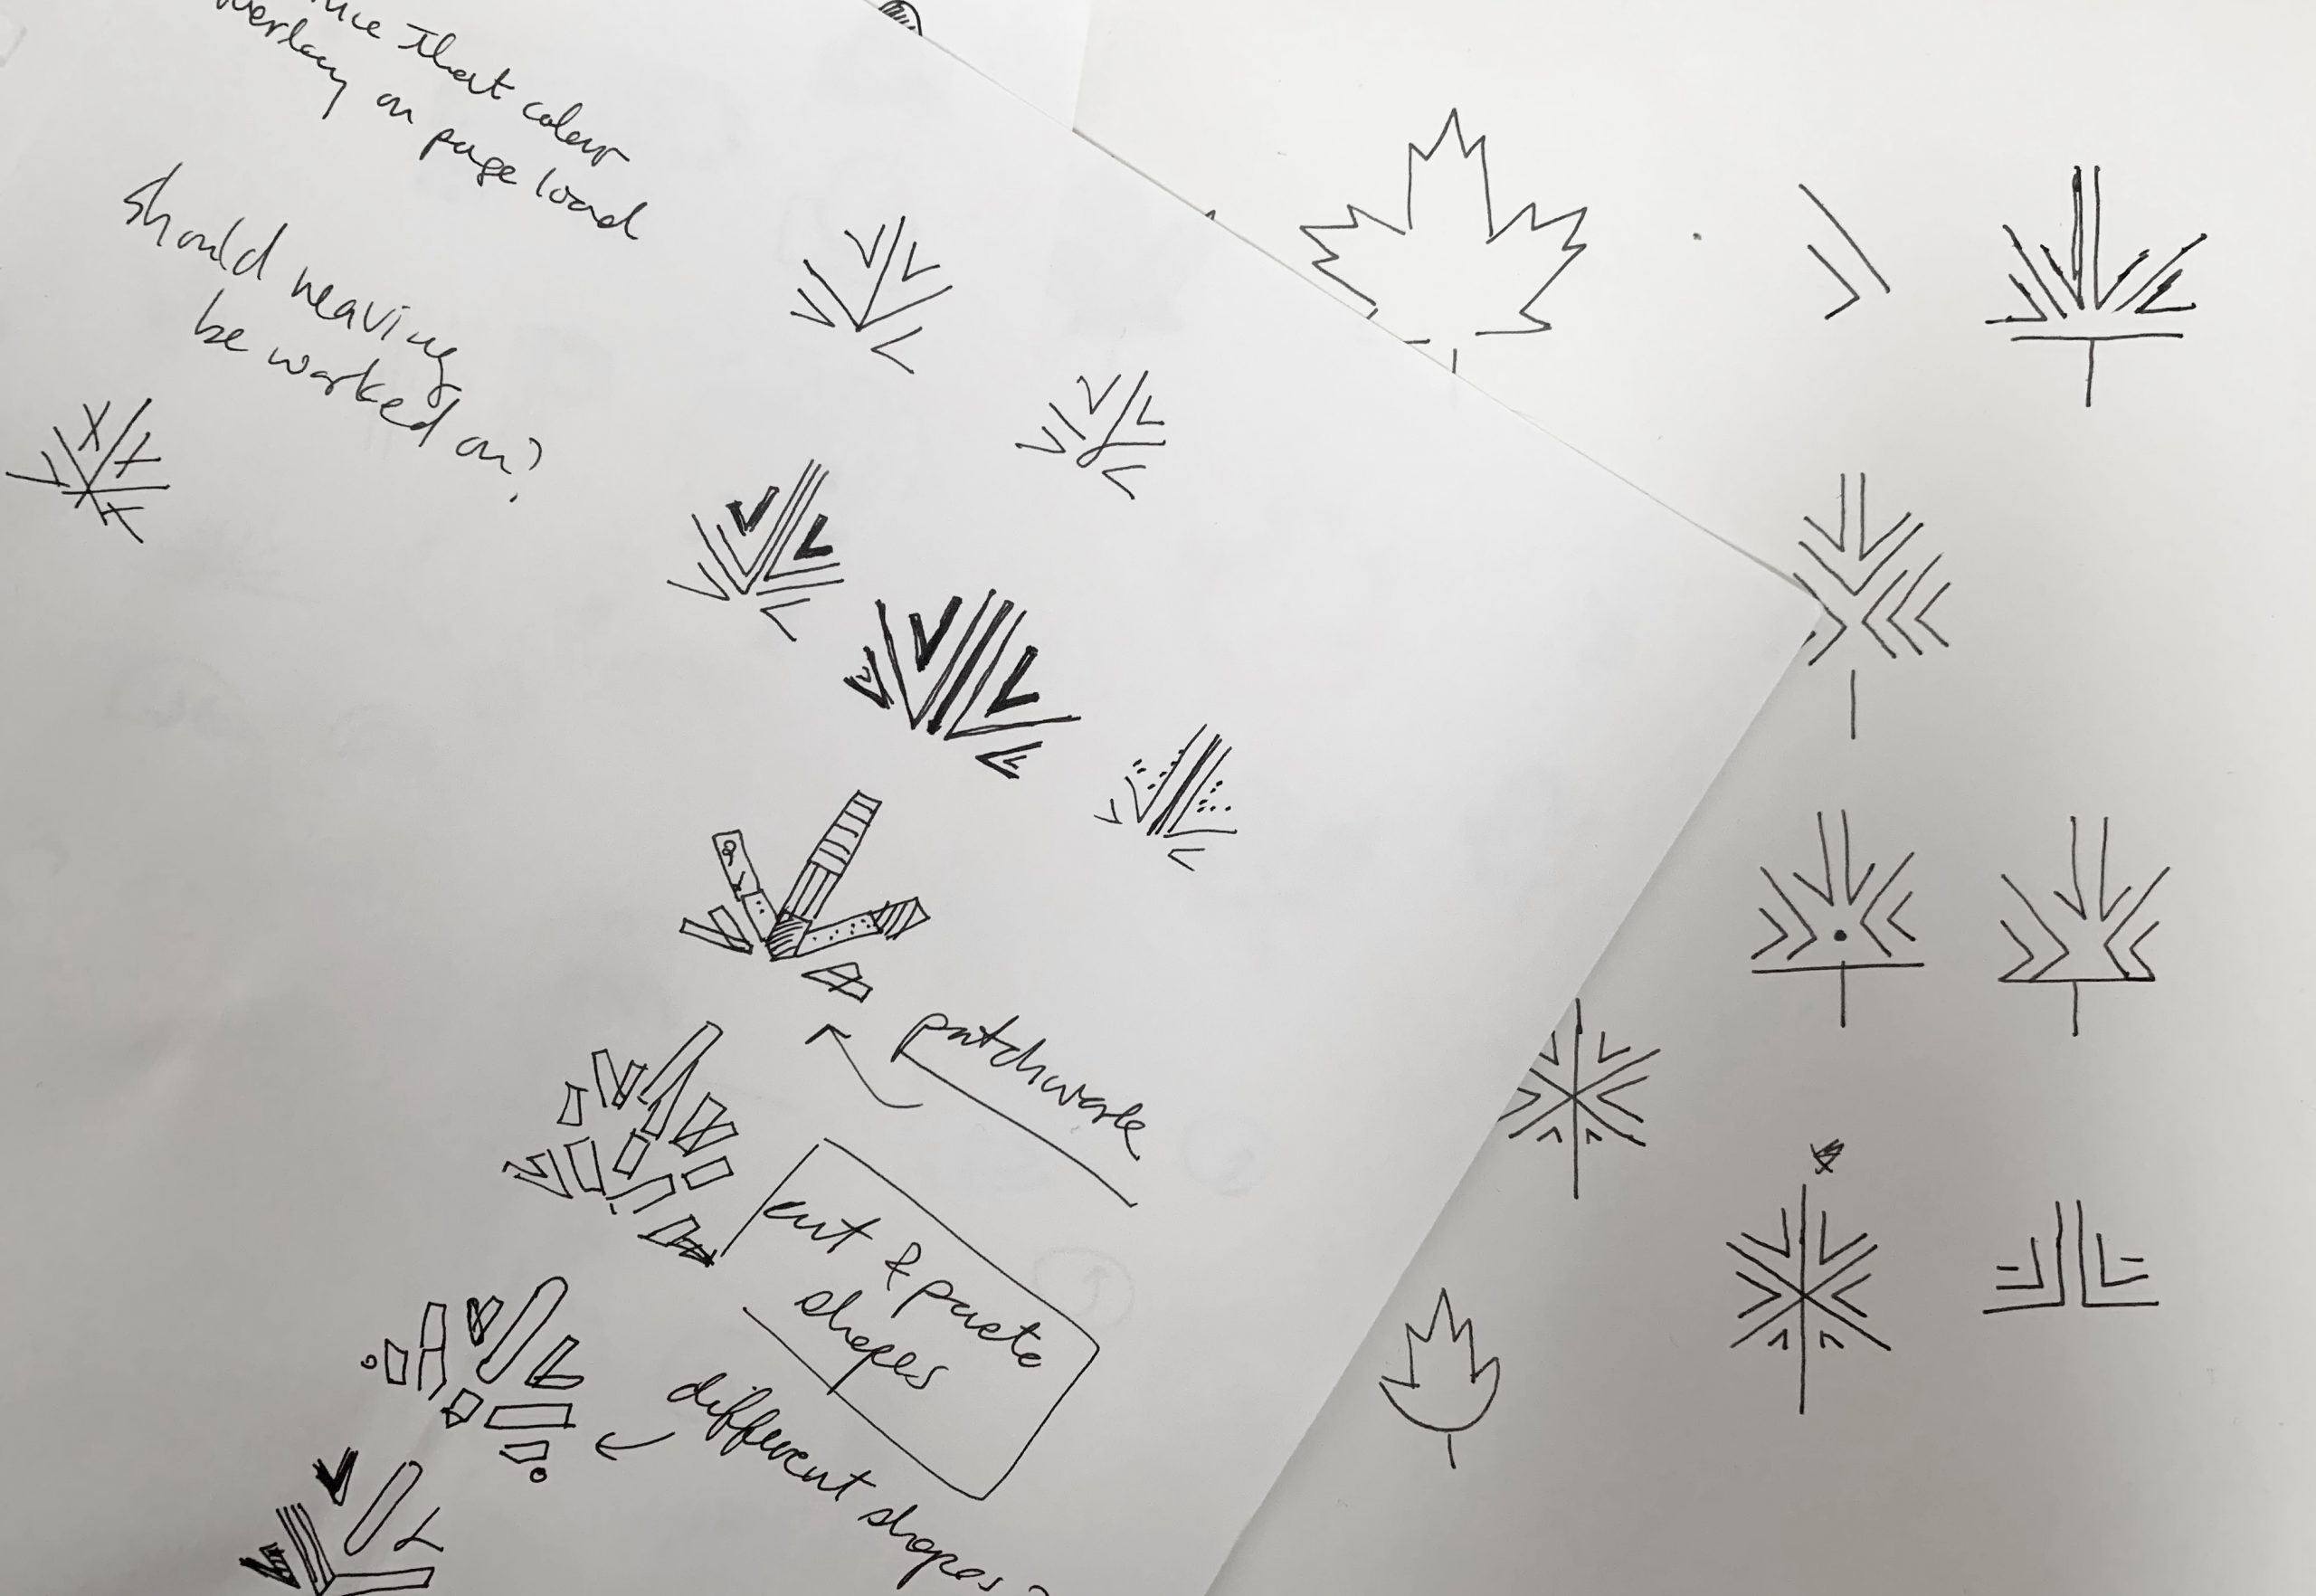 Two sketchbook pages showing a range of preliminary hand-drawn thumbnail sketches of the arrive logo in black fine line pen